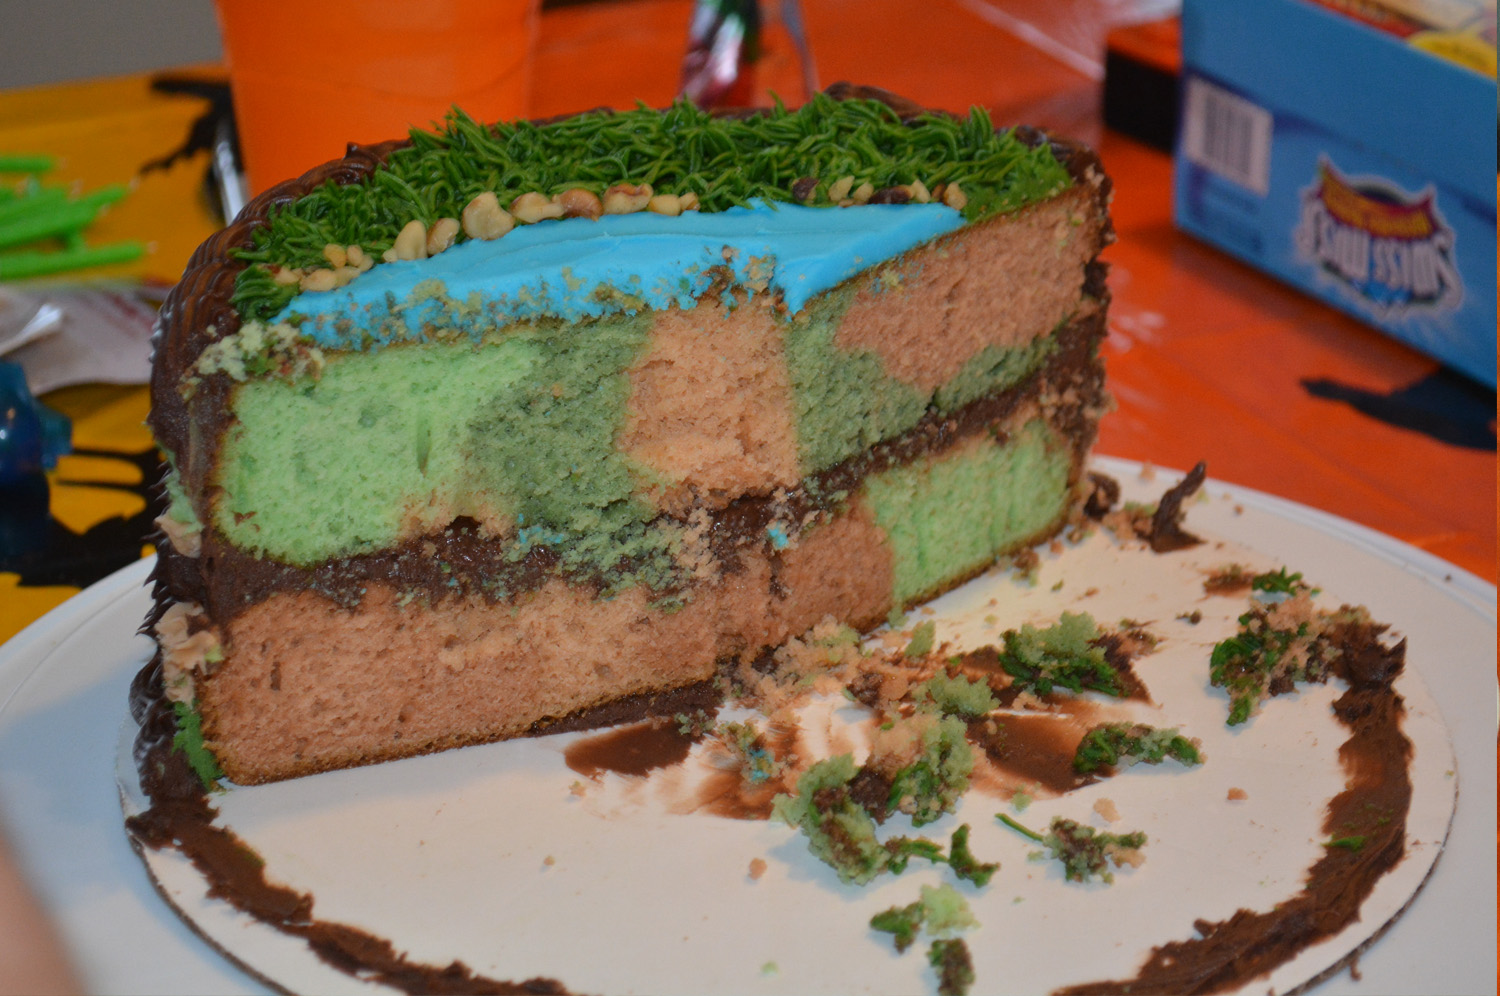 How to Make Camouflage Cake Mommys Fabulous Finds